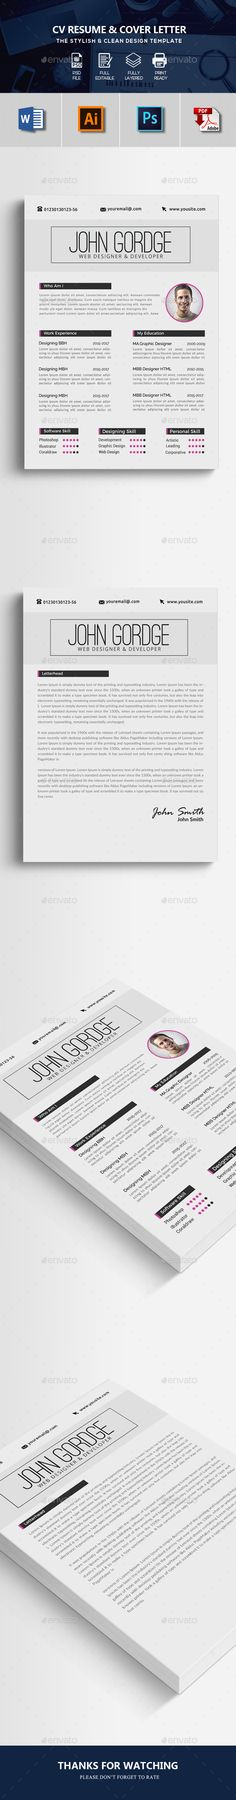 Resume Template PSD, Vector EPS, AI Illustrator, MS Word - Fully